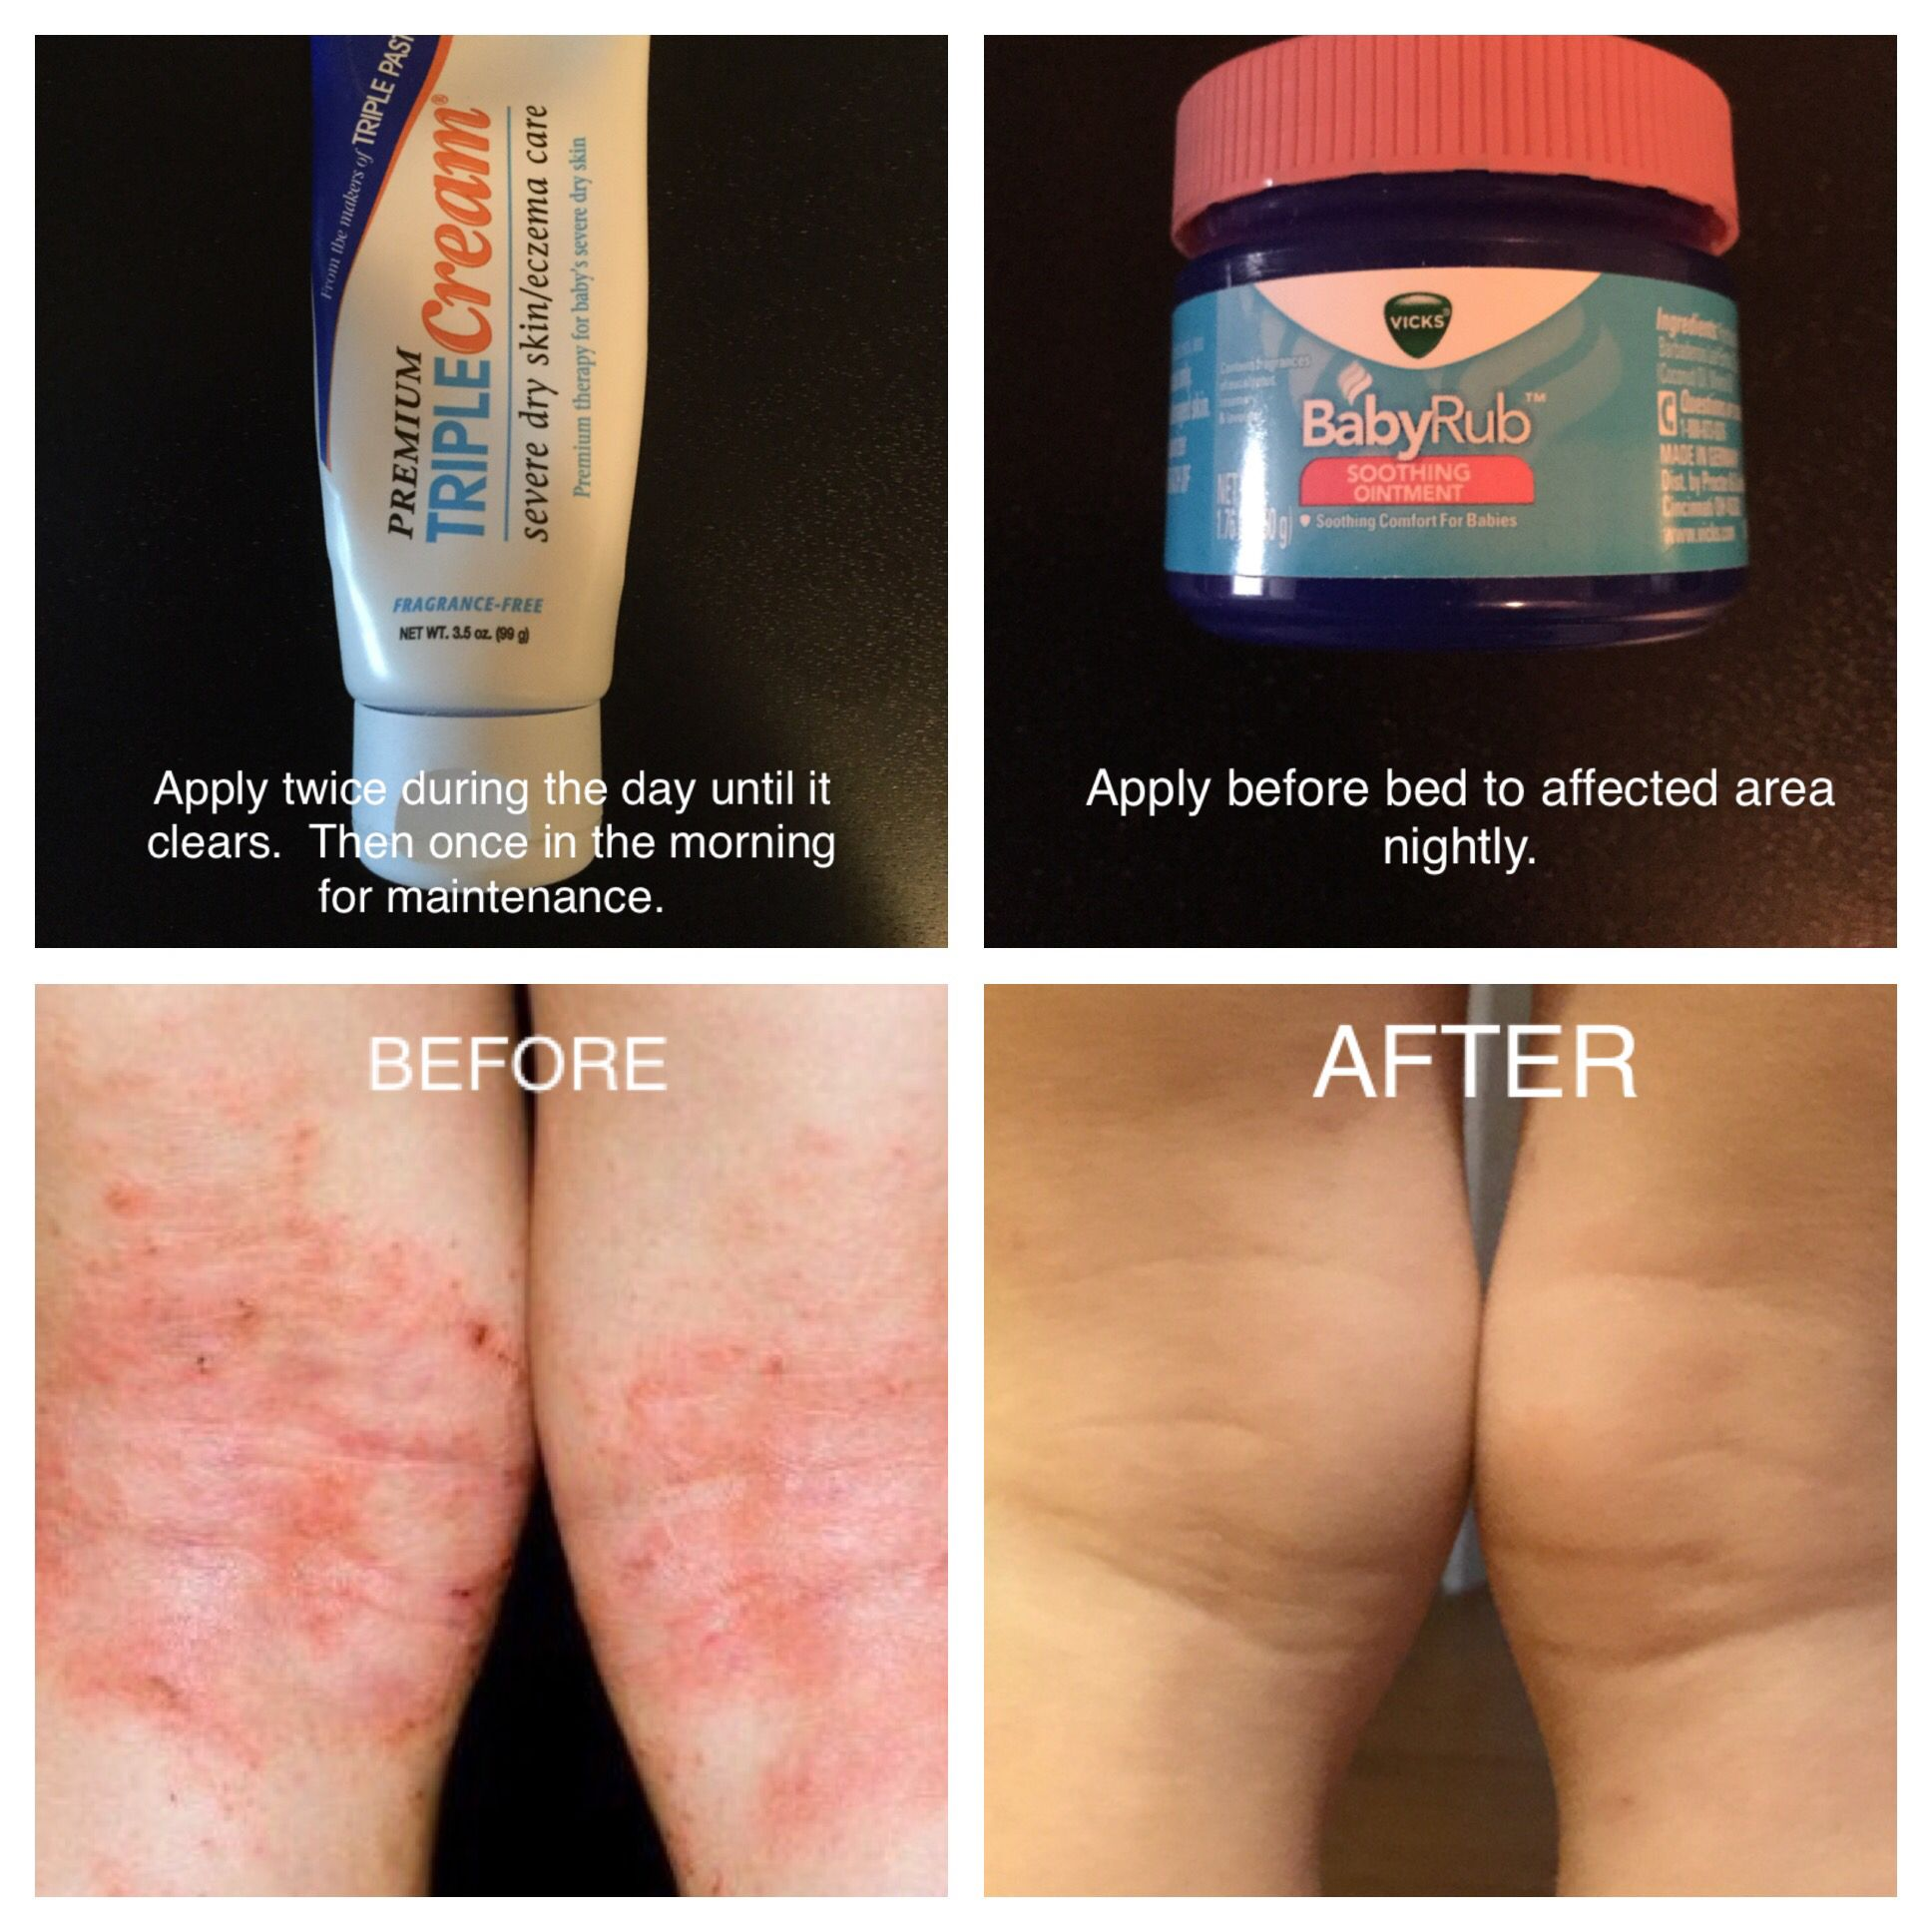 Amazing Releif For Eczema Hoping This Helps Anyone Else Affected With Eczema My Little Guy Had Also Pic Eczema Remedies Eczema Treatment Dry Skin Eczema